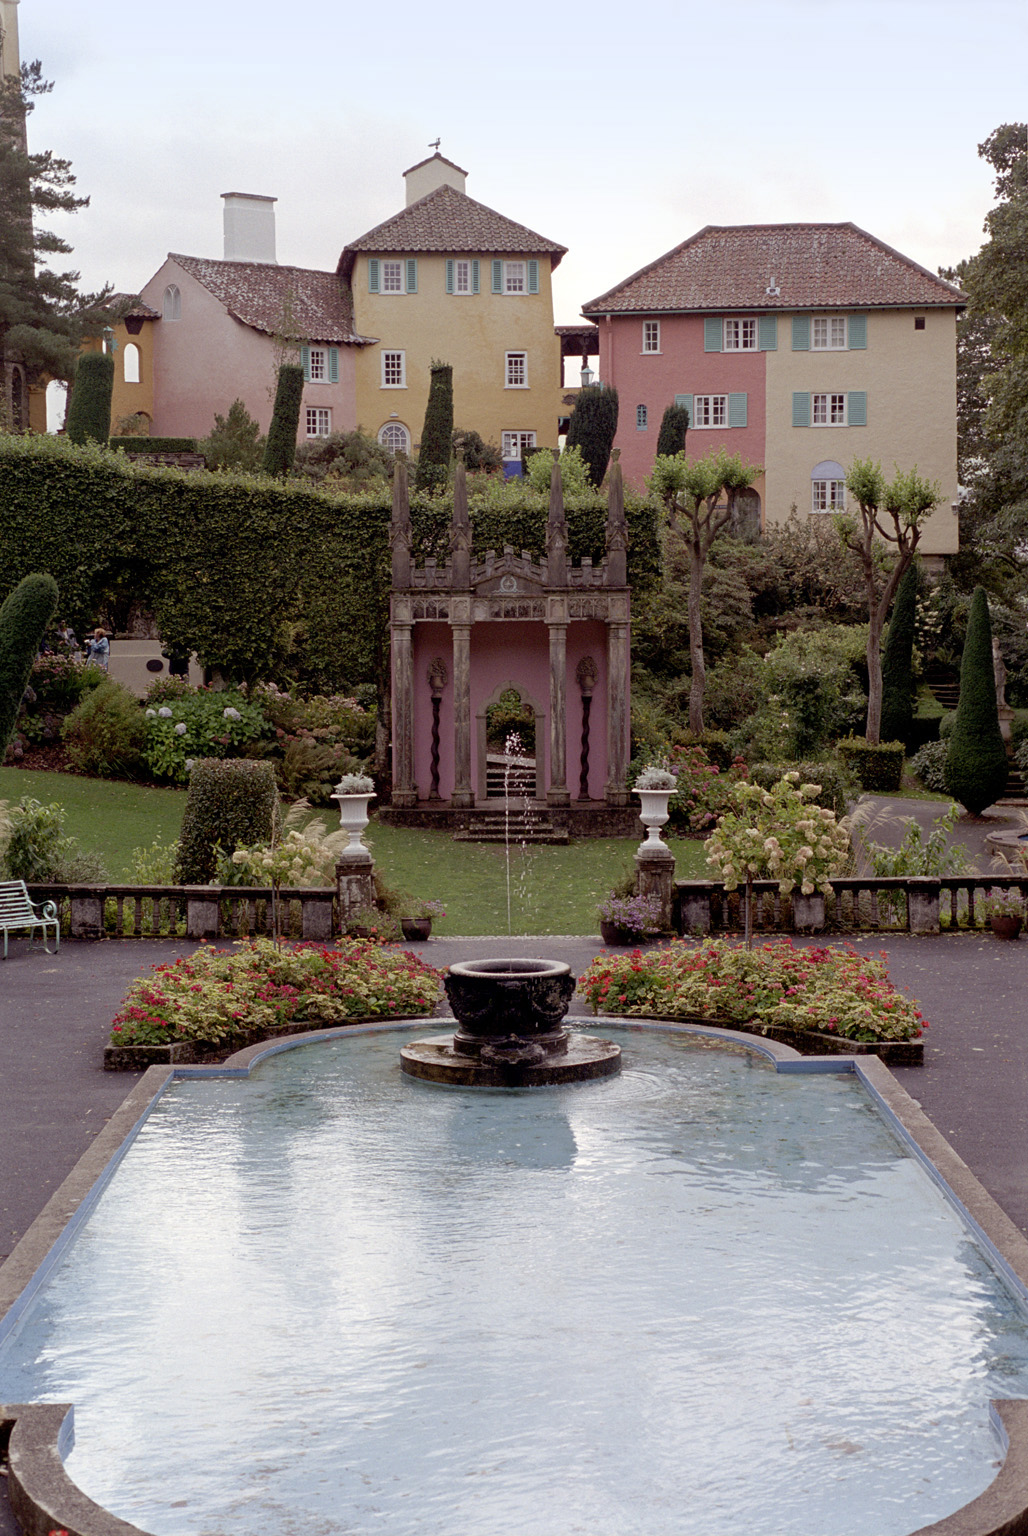 Pond and buildings in Portmeirion, North wales, a quaint picturesque village modeled on Italian architecture and a popular tourist attraction